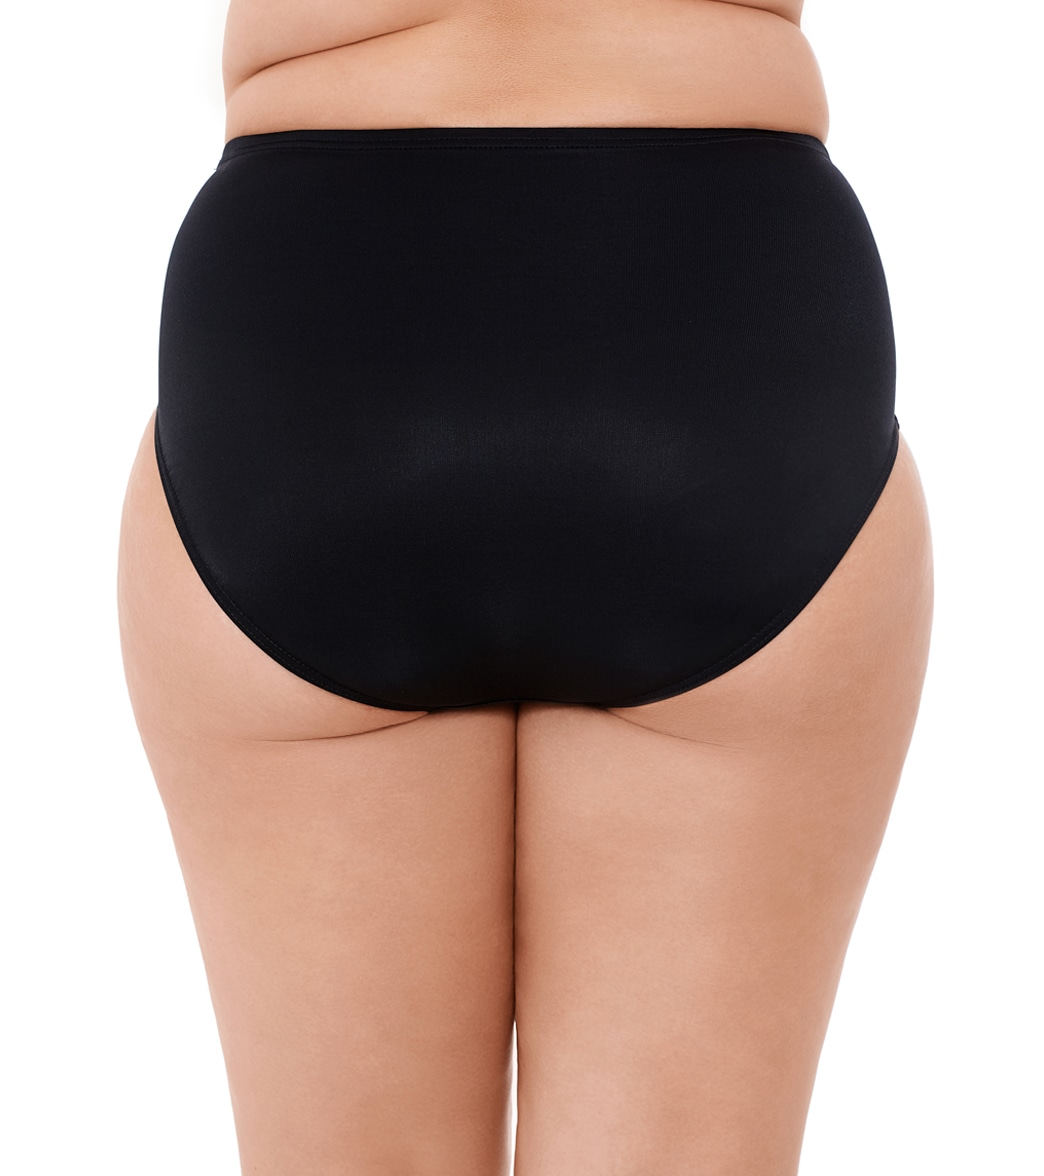 66ed519963 Miraclesuit Plus Size Solid Basic Bikini Bottom at SwimOutlet.com - Free  Shipping